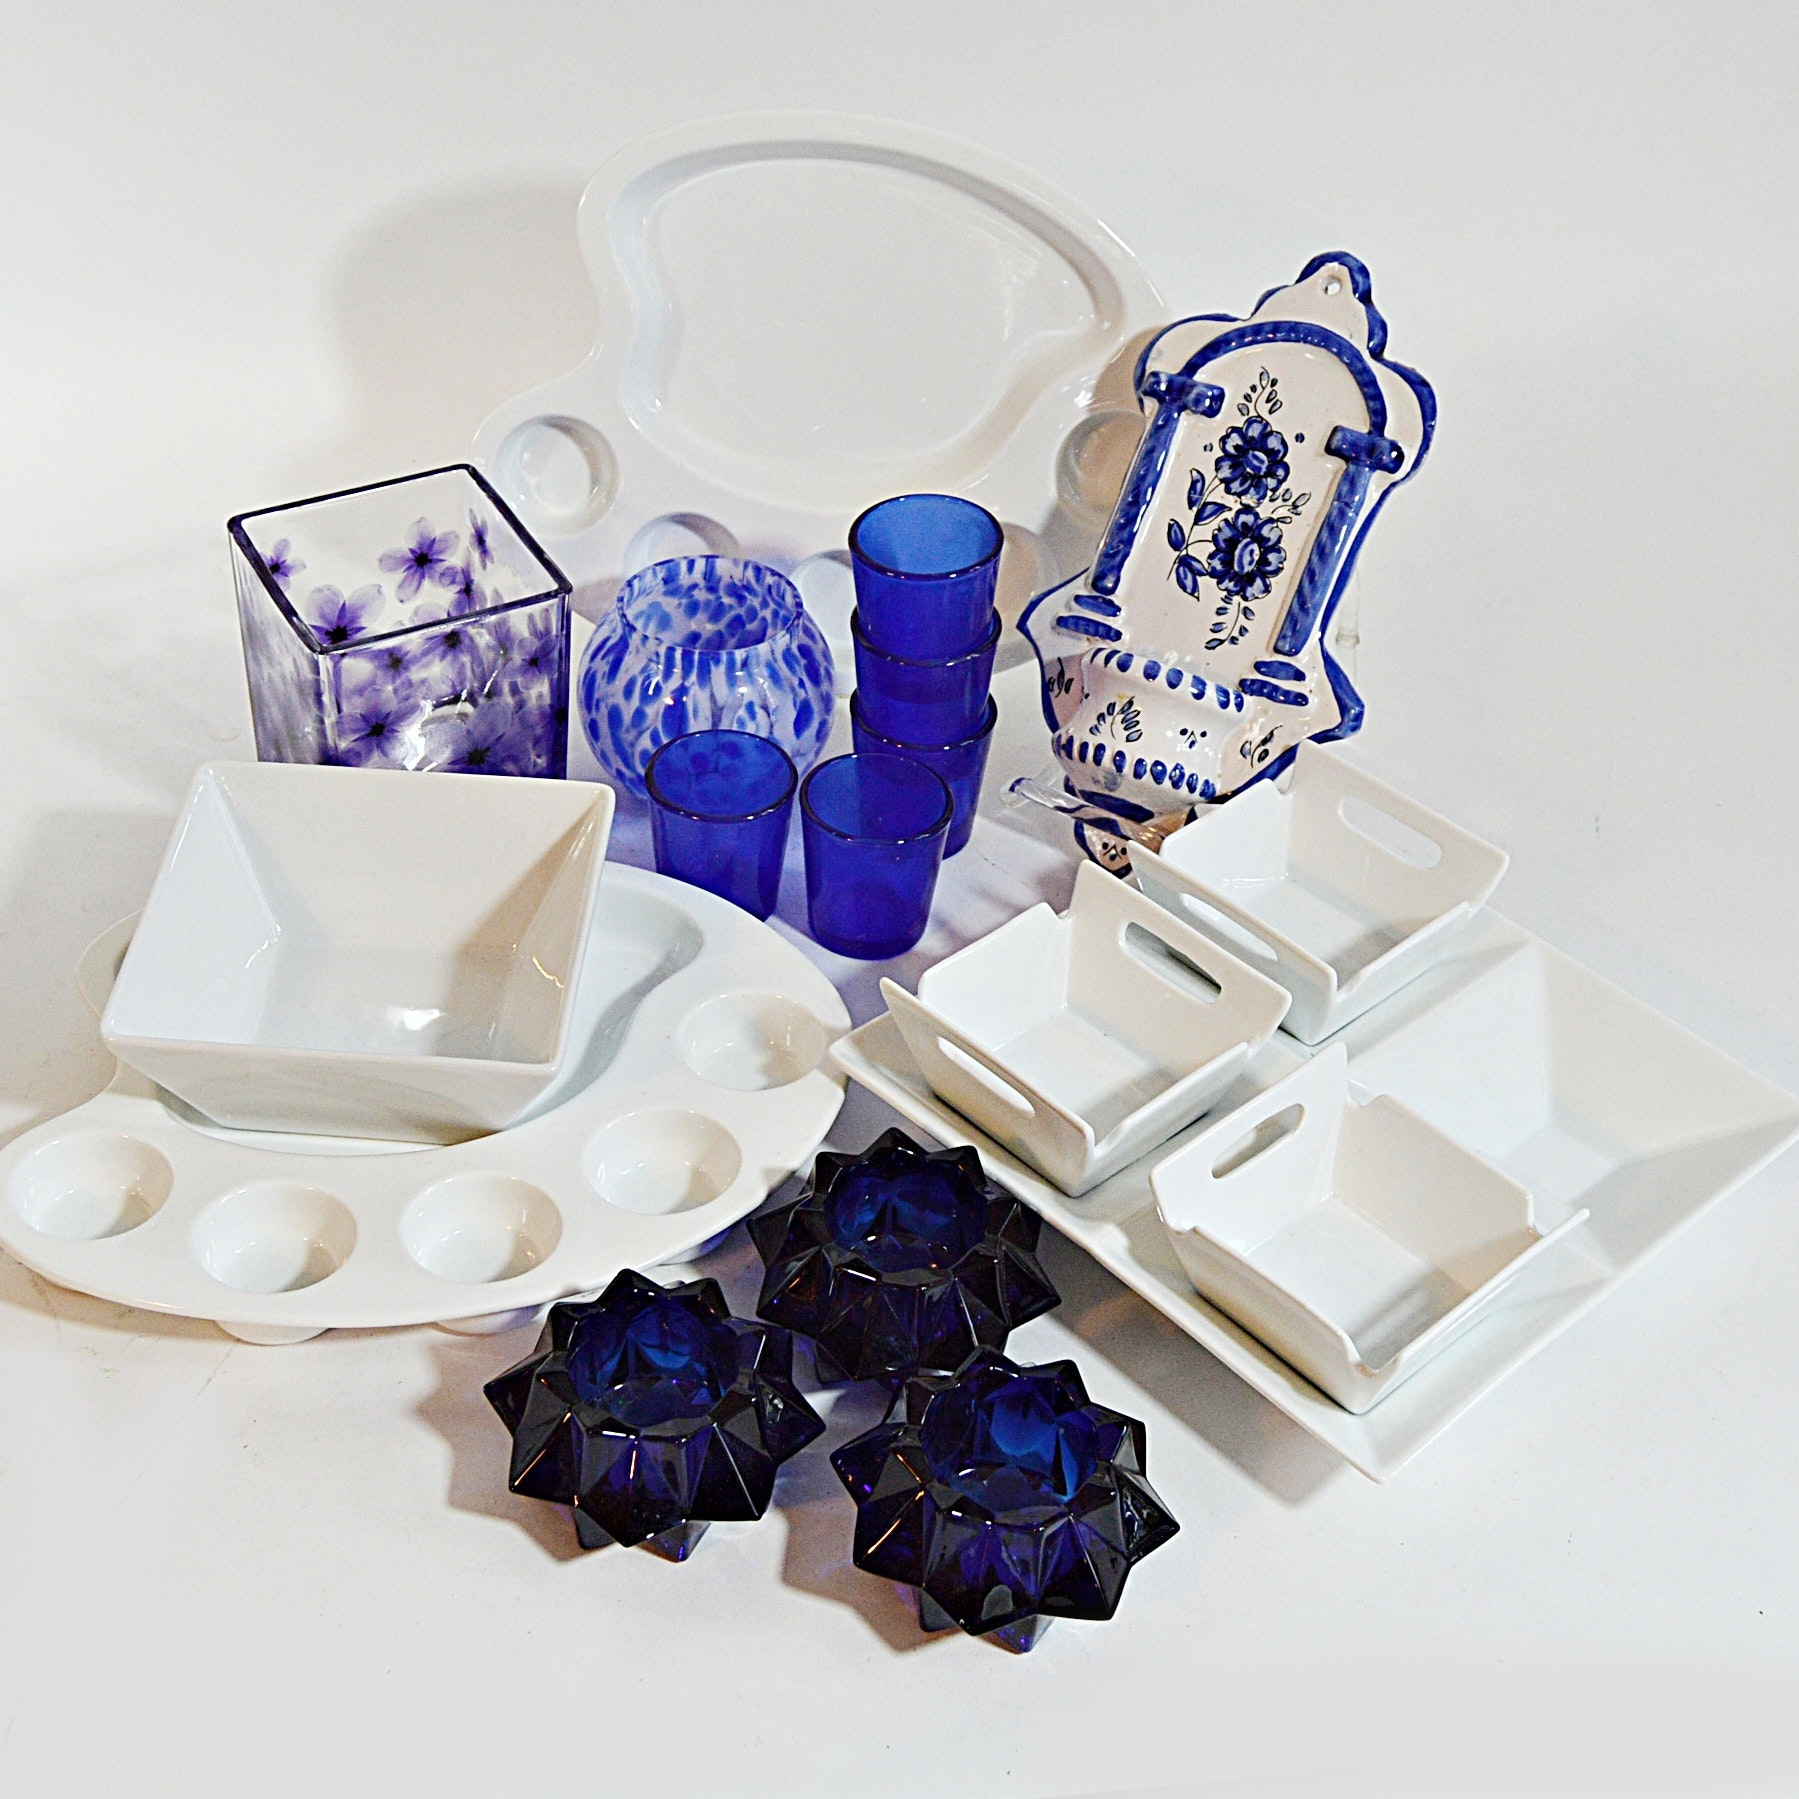 White Porcelain Tableware, Delft Wall Sconce and Blue Glass Decor